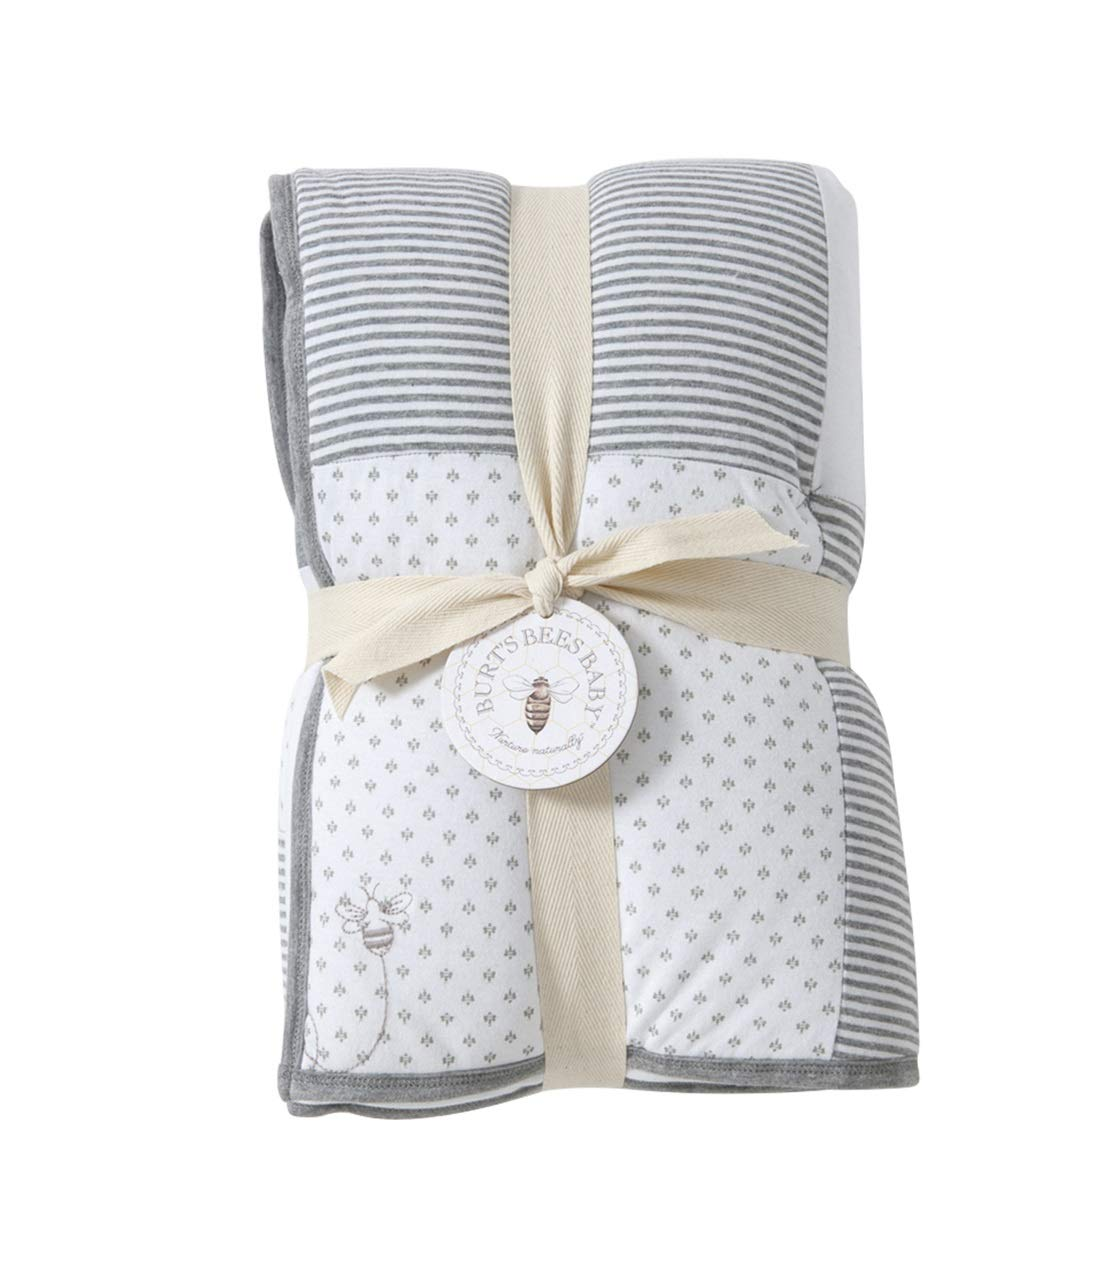 Burt's Bees Baby - Reversible Quilt Baby Blanket, Dottie Bee Print, 100% Organic Cotton and 100% Polyester Fill (Heather Grey) by Burt's Bees Baby